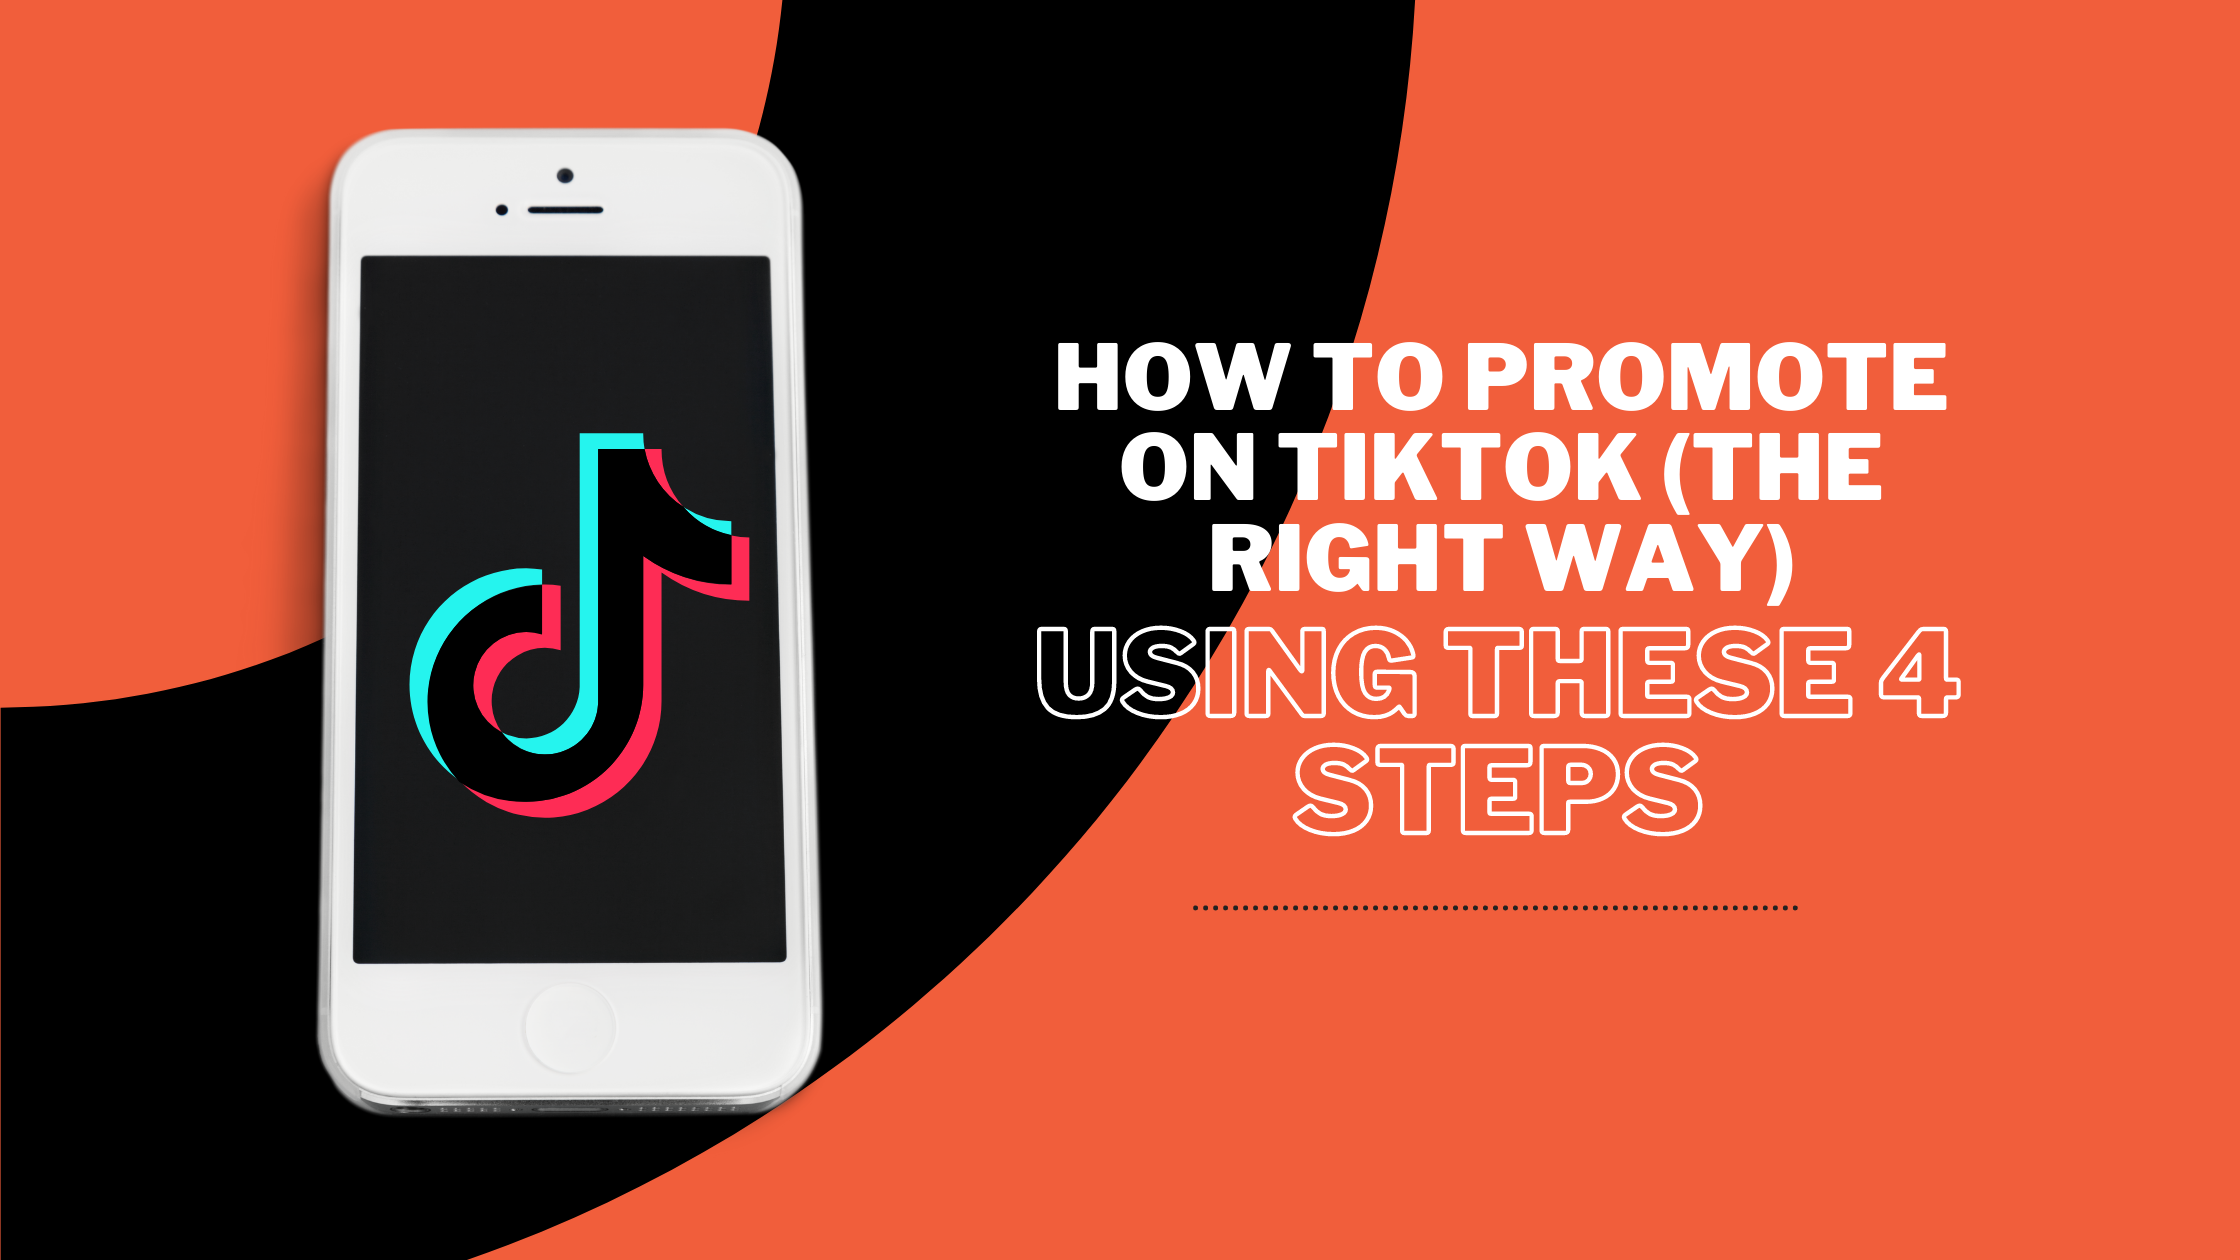 How To Promote On TikTok (The Right Way) Using These 4 Steps